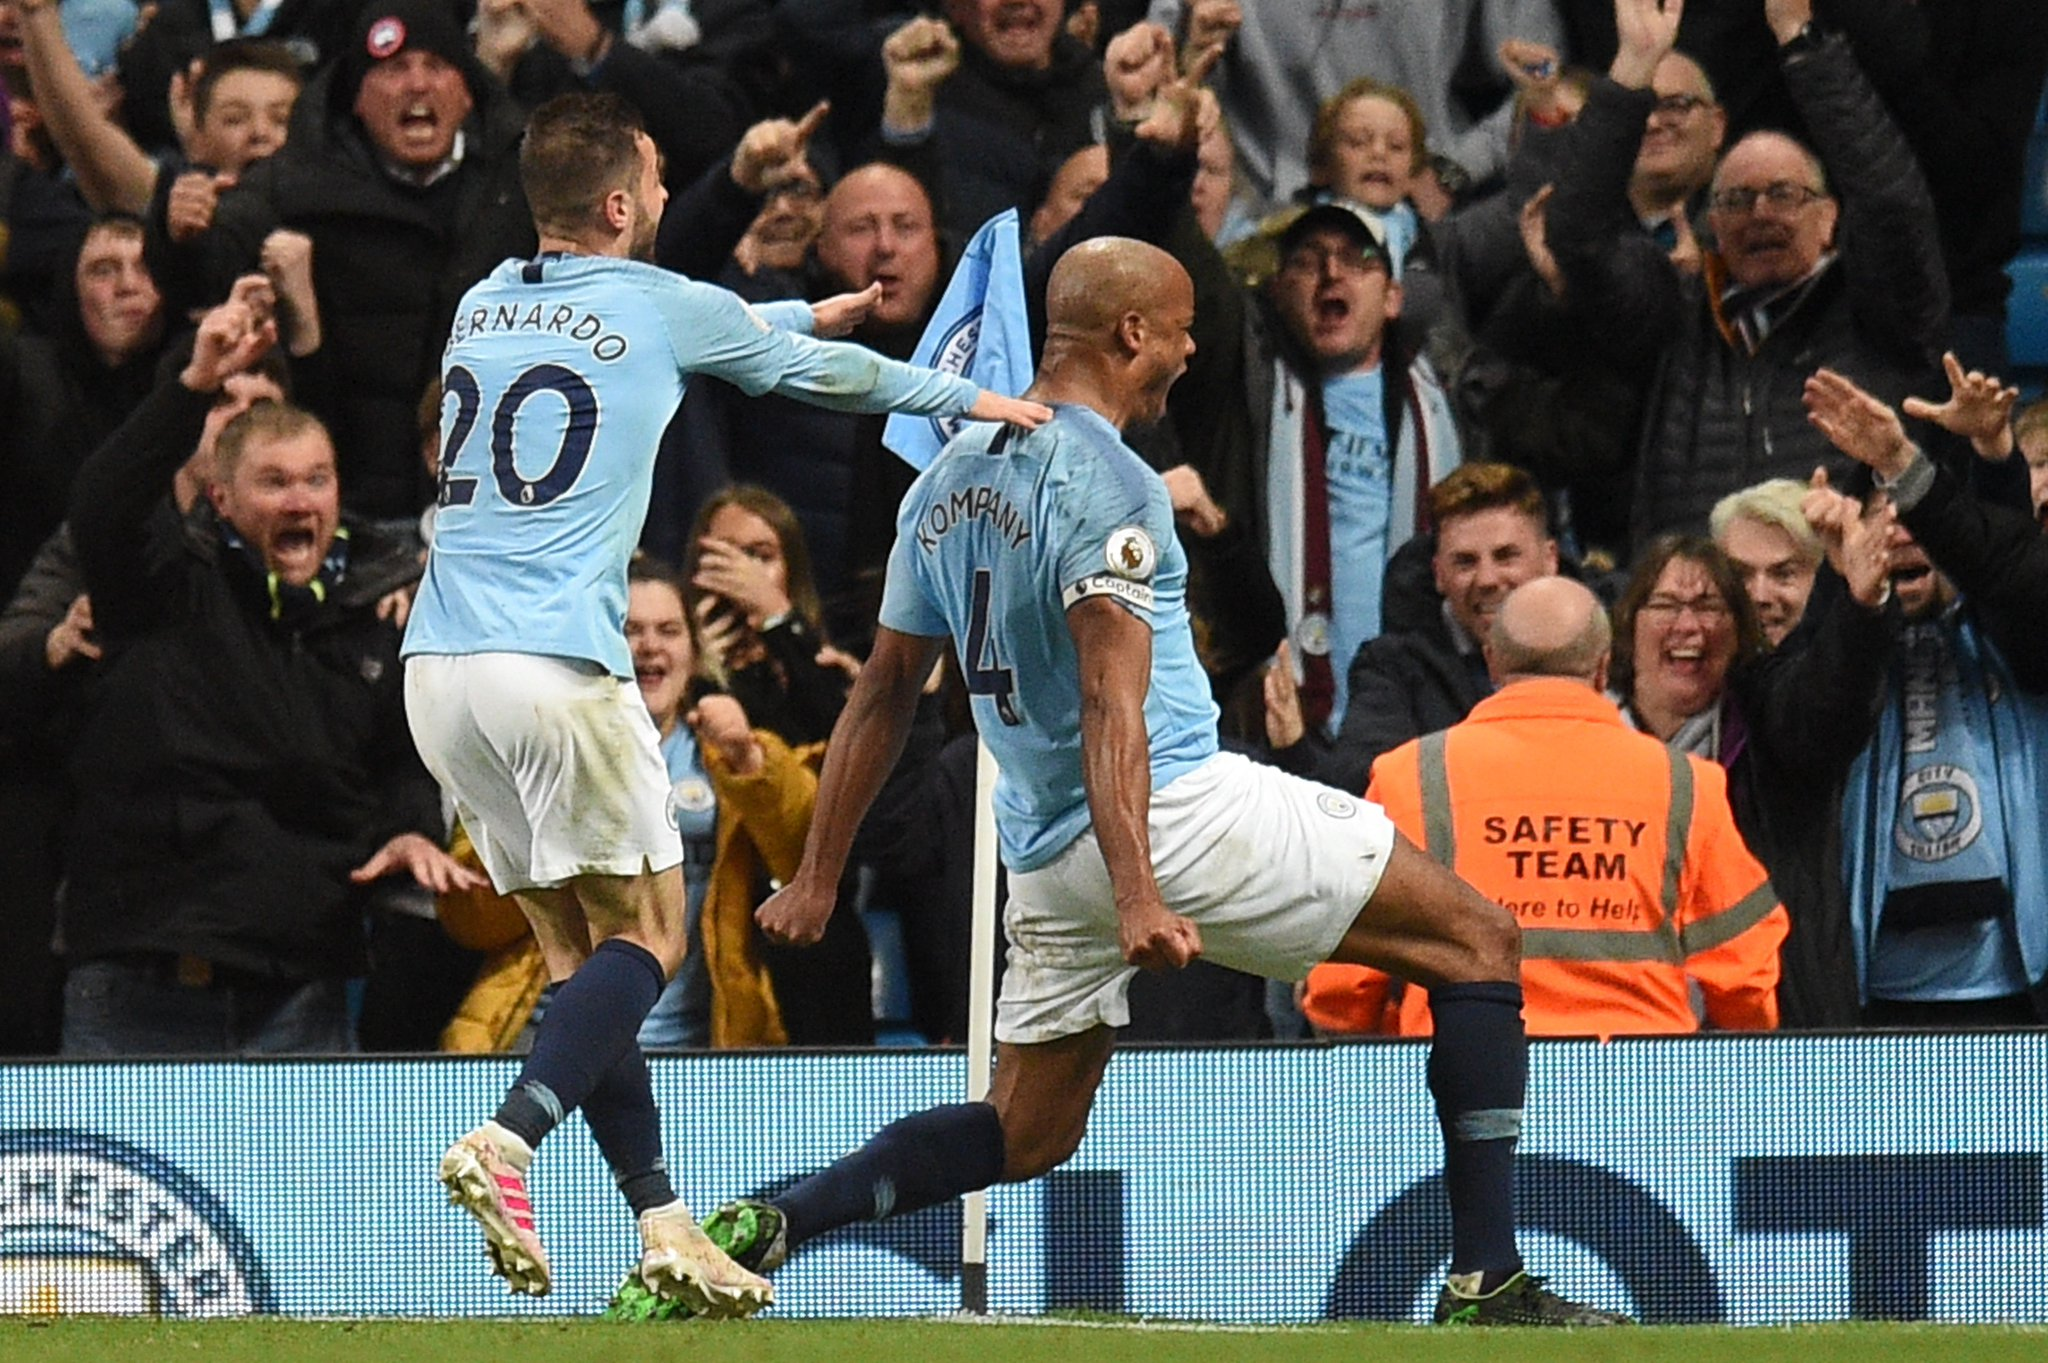 Manchester City returns to top spot in the Premier League thanks to Vincent Kompany winner